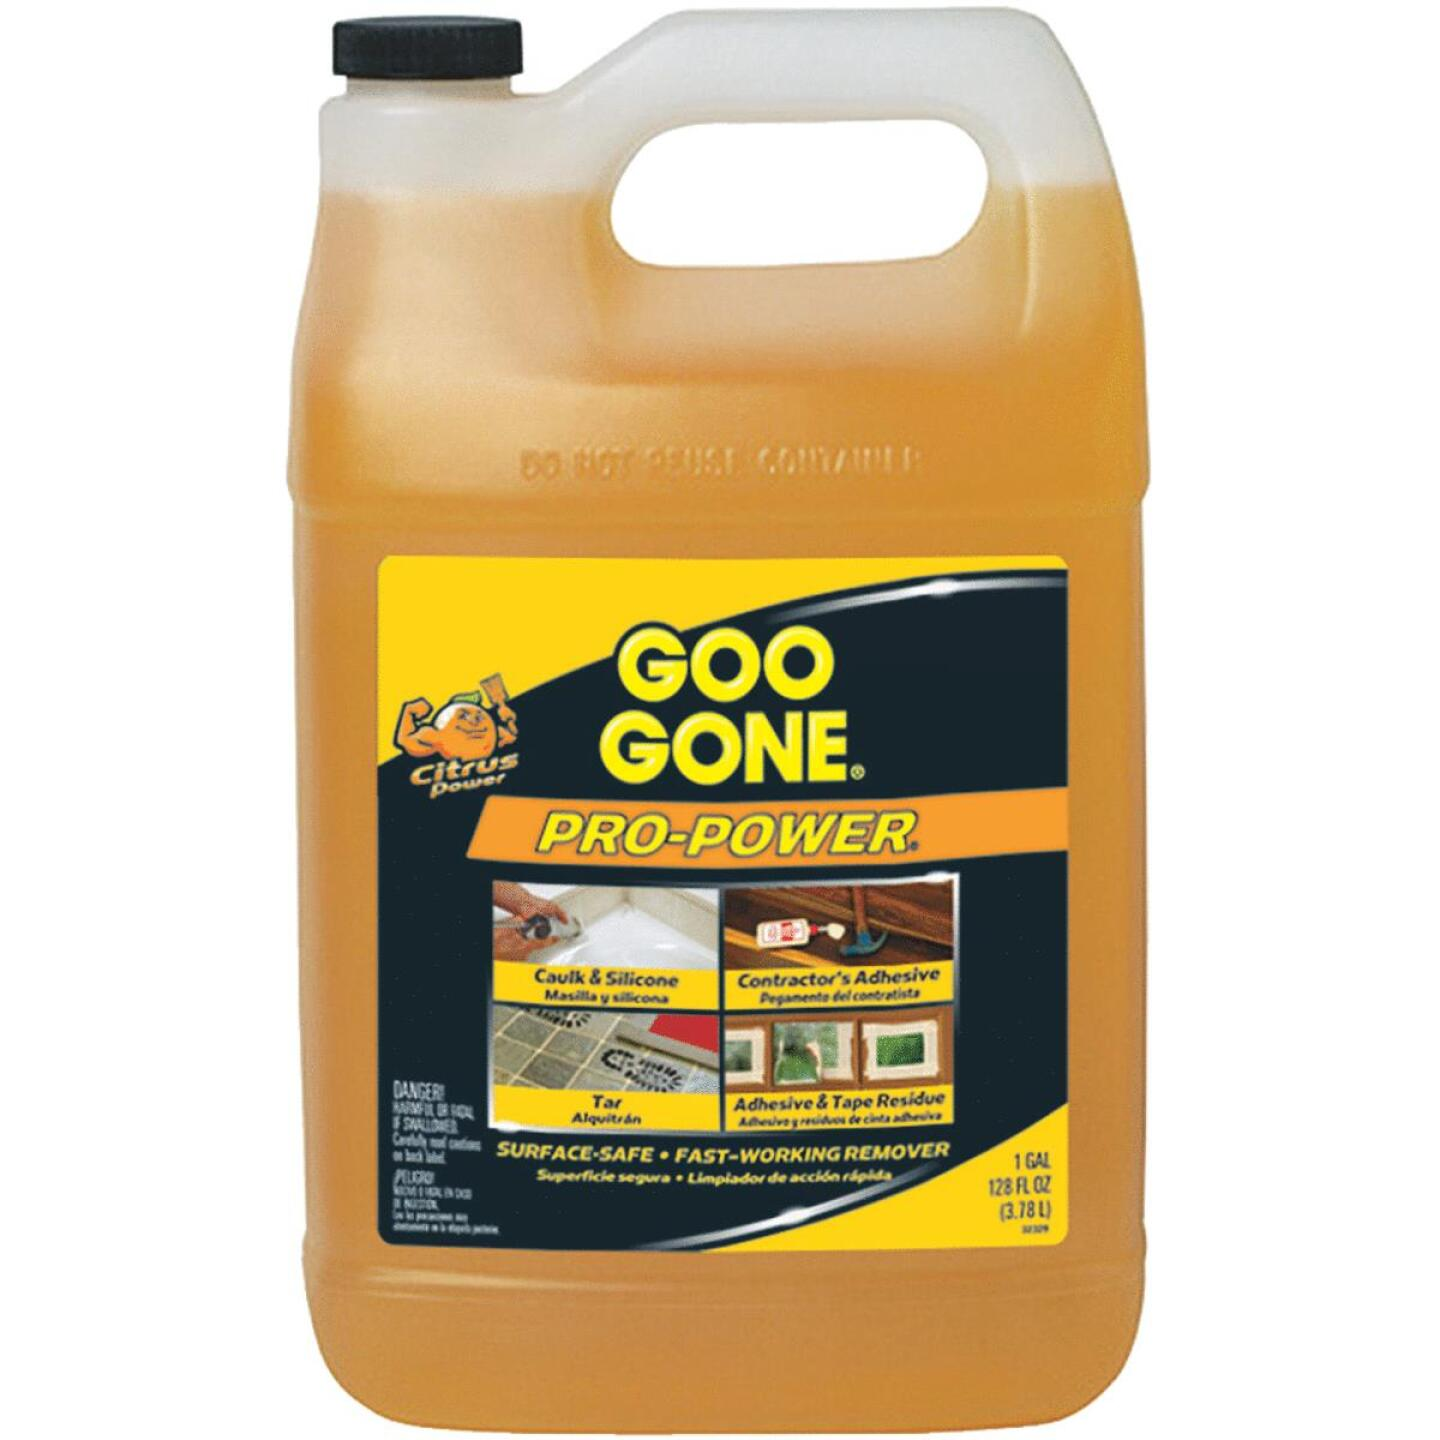 Goo Gone 1 Gal. Pro-Power Adhesive Remover Image 6